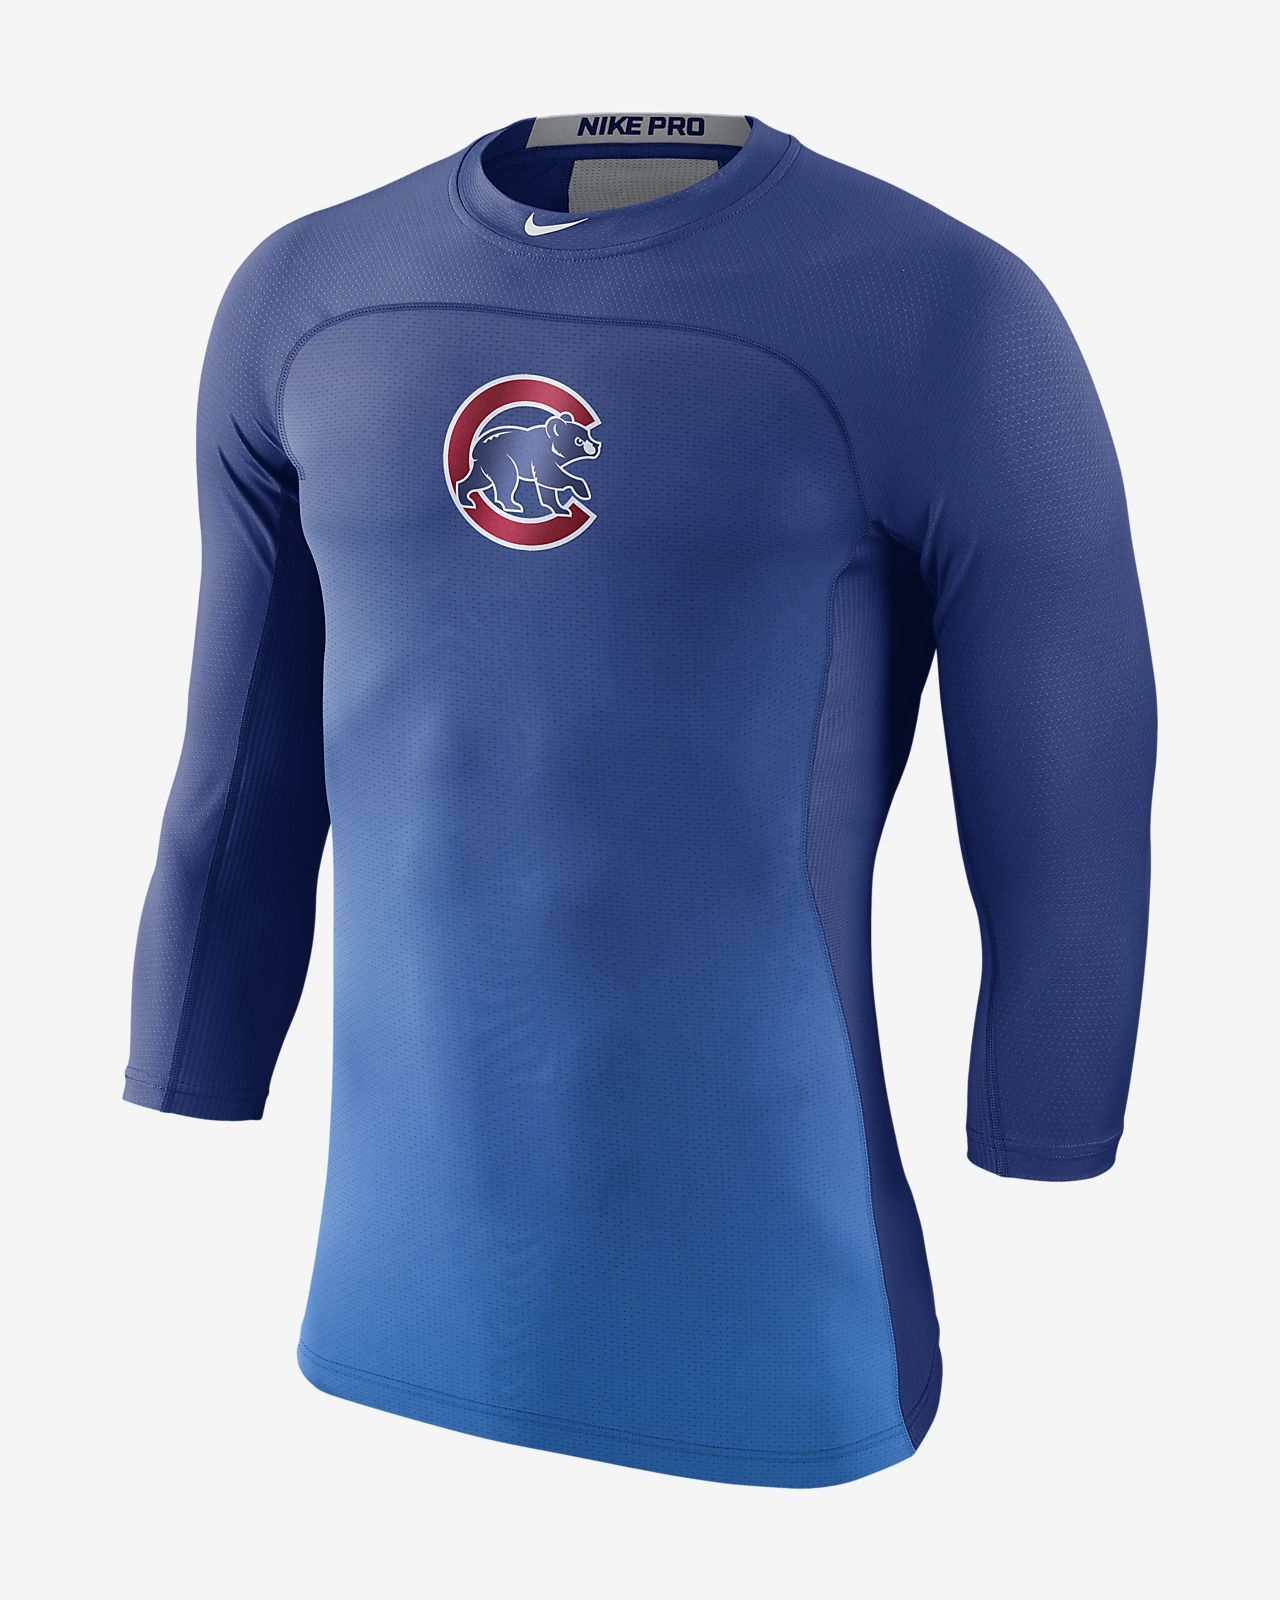 Nike Pro HyperCool (MLB Cubs) Men's 3/4 Sleeve Top